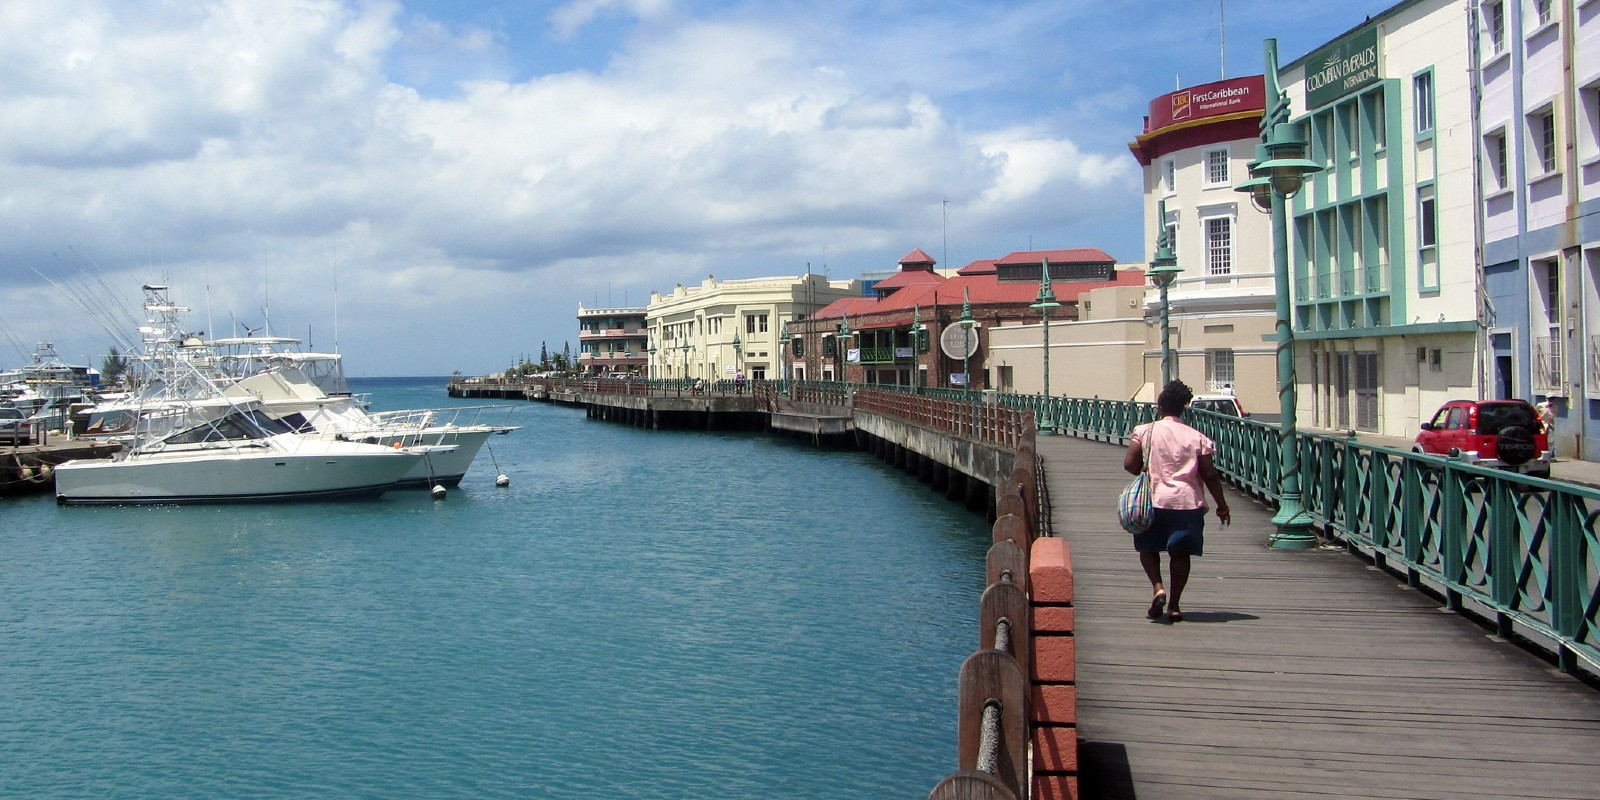 Travel blog: 9 Of The Best Things to do in Bridgetown: Why We Love This City